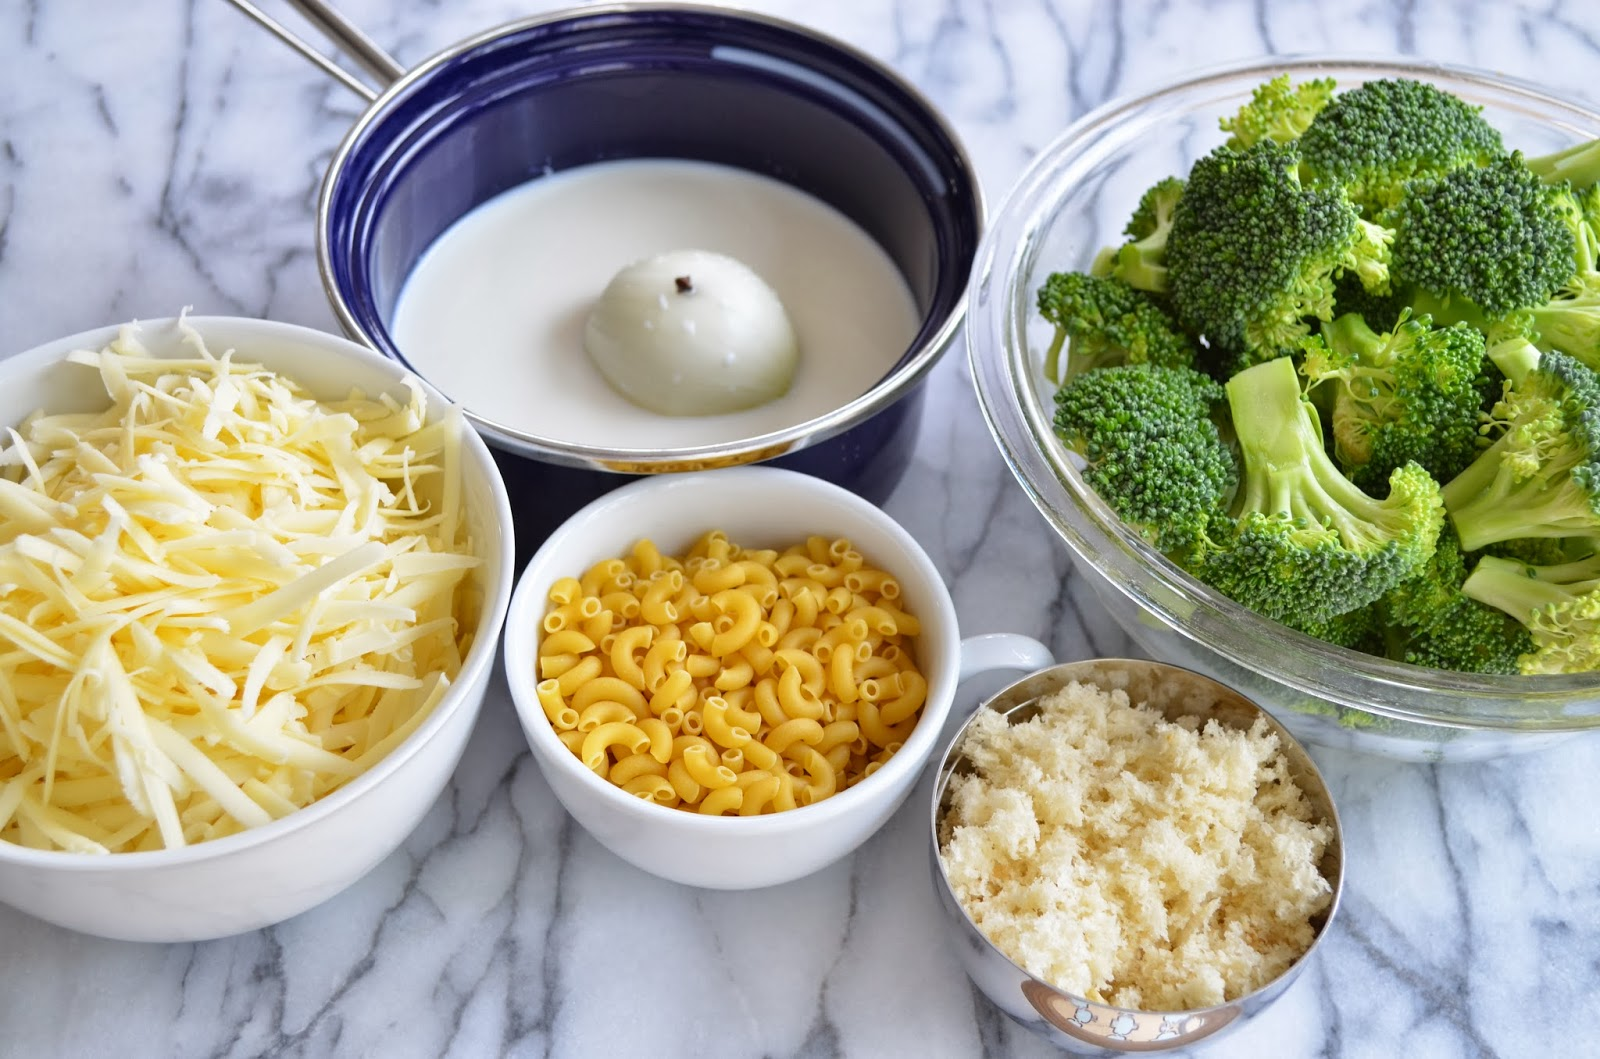 Macroni and cheese with broccoli - ingredients